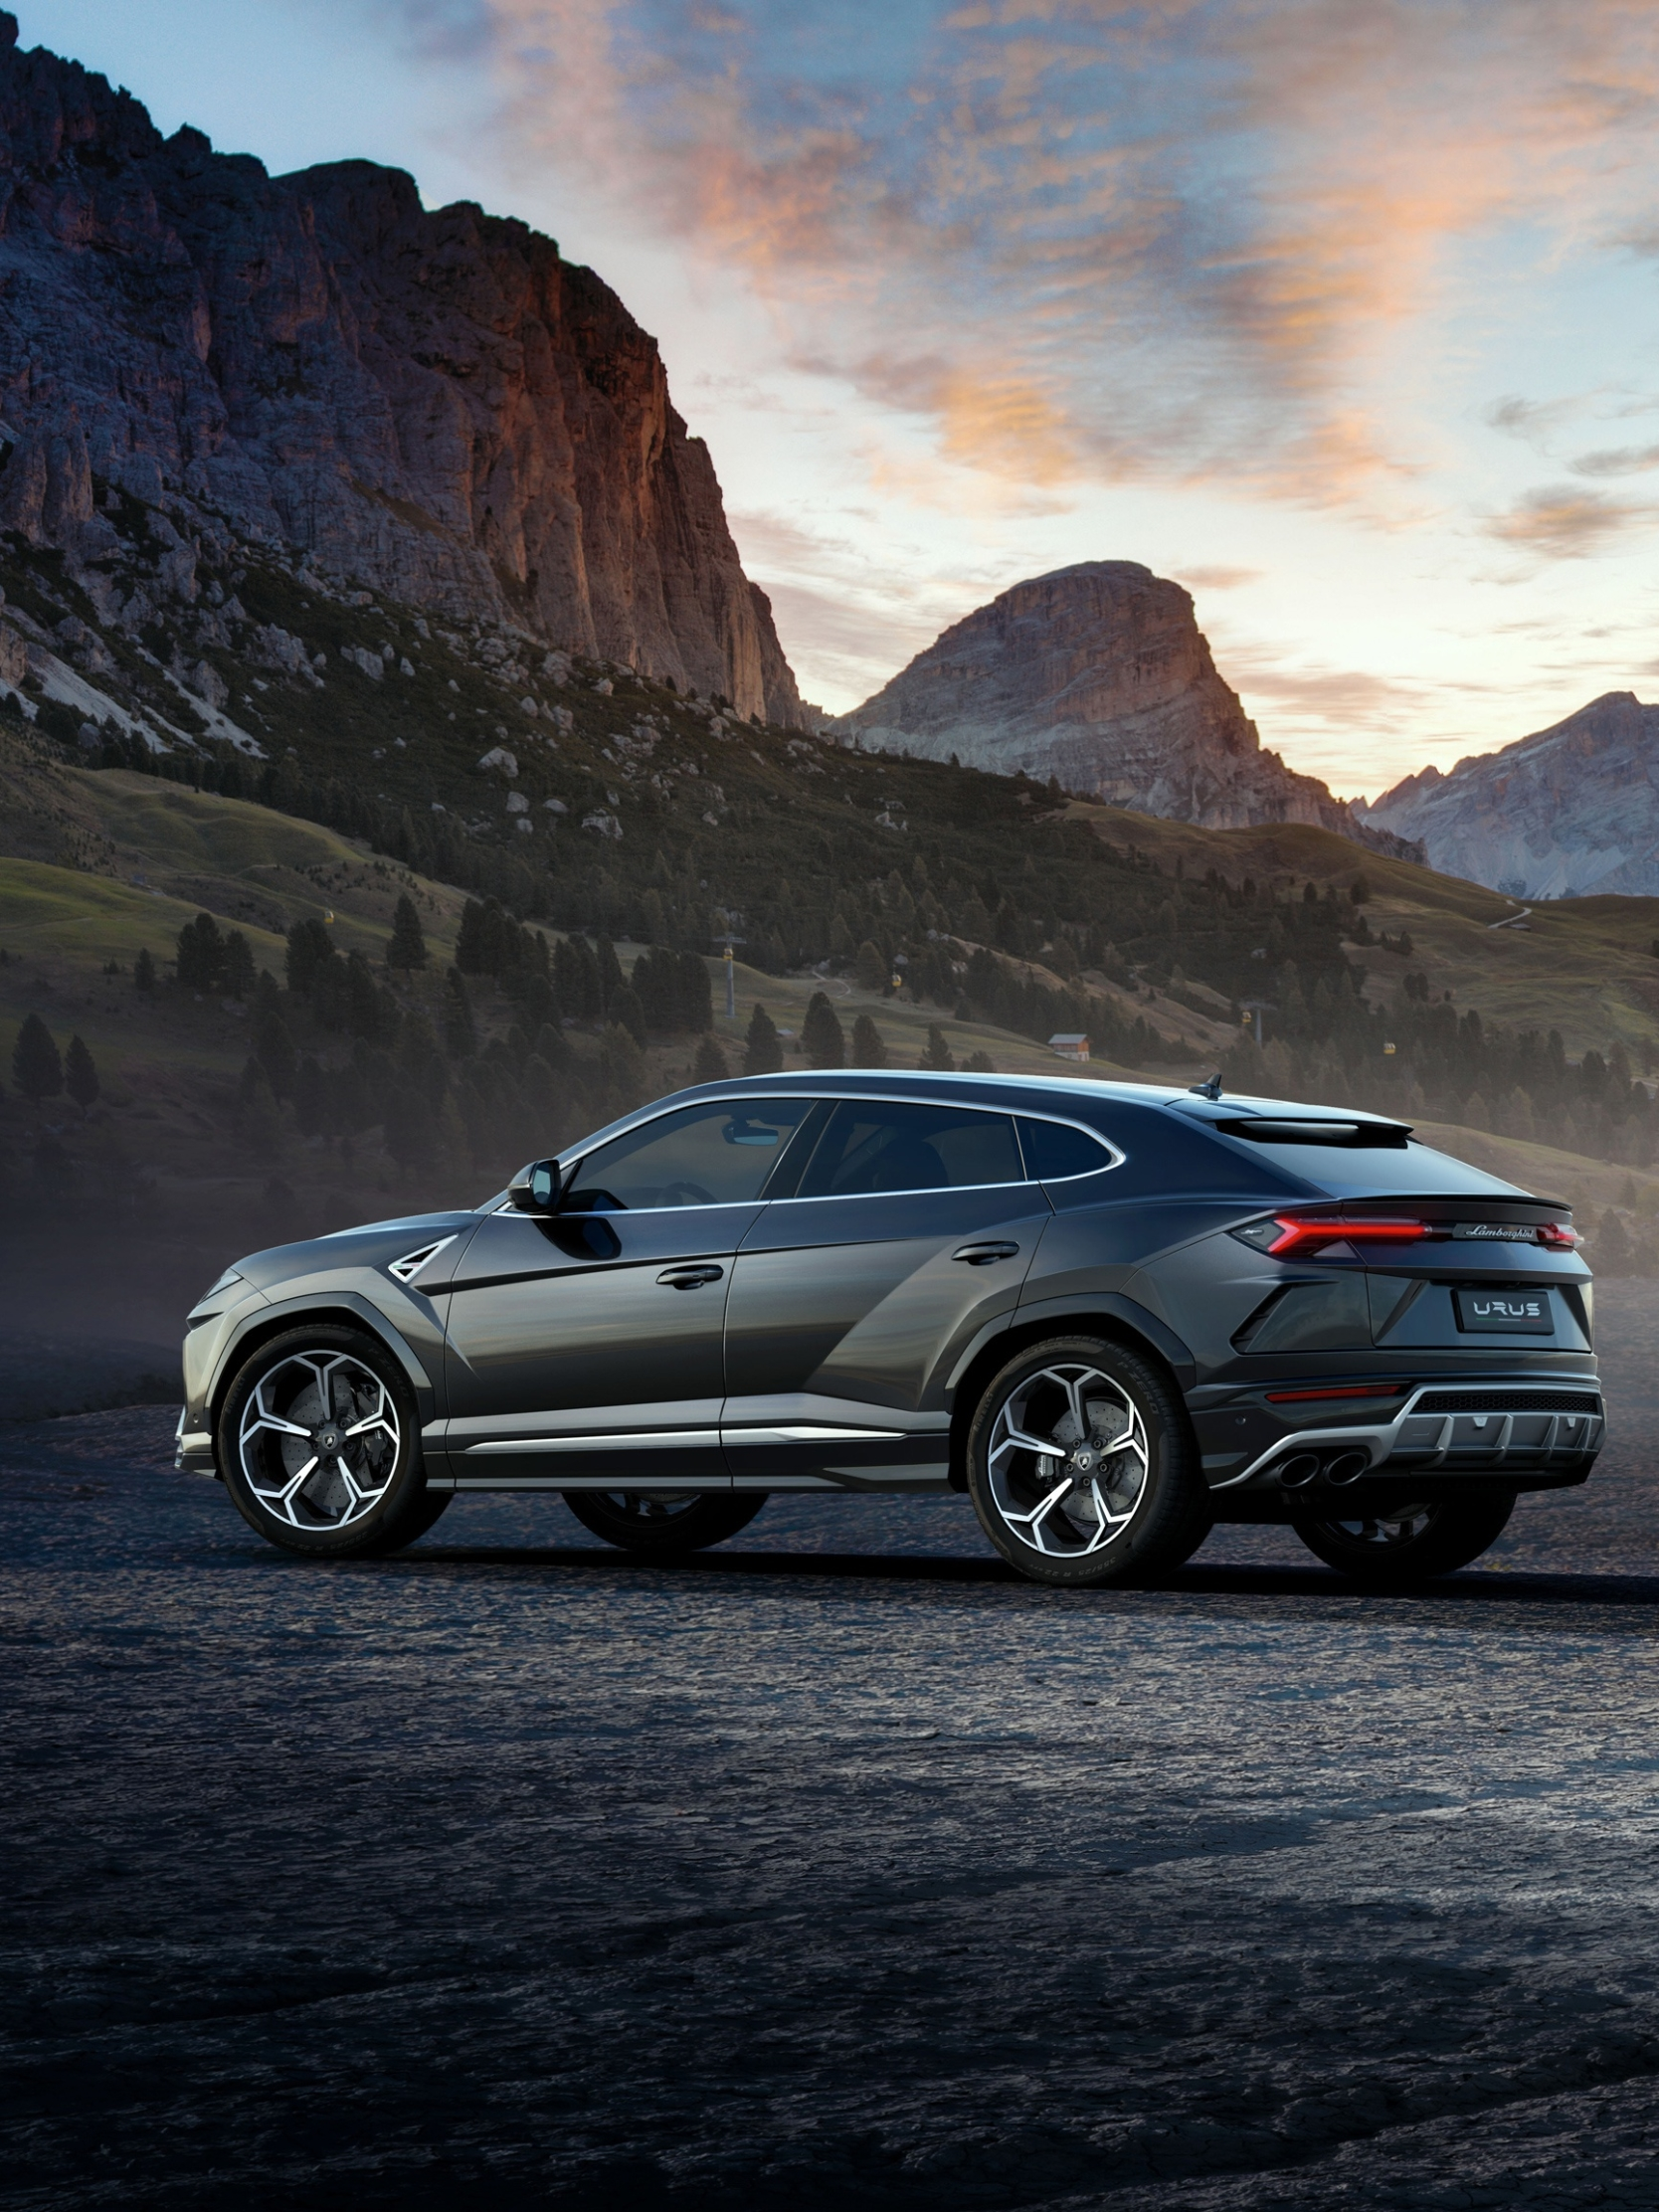 vehicles/lamborghini urus (768x1024) wallpaper id: 707214 - mobile abyss